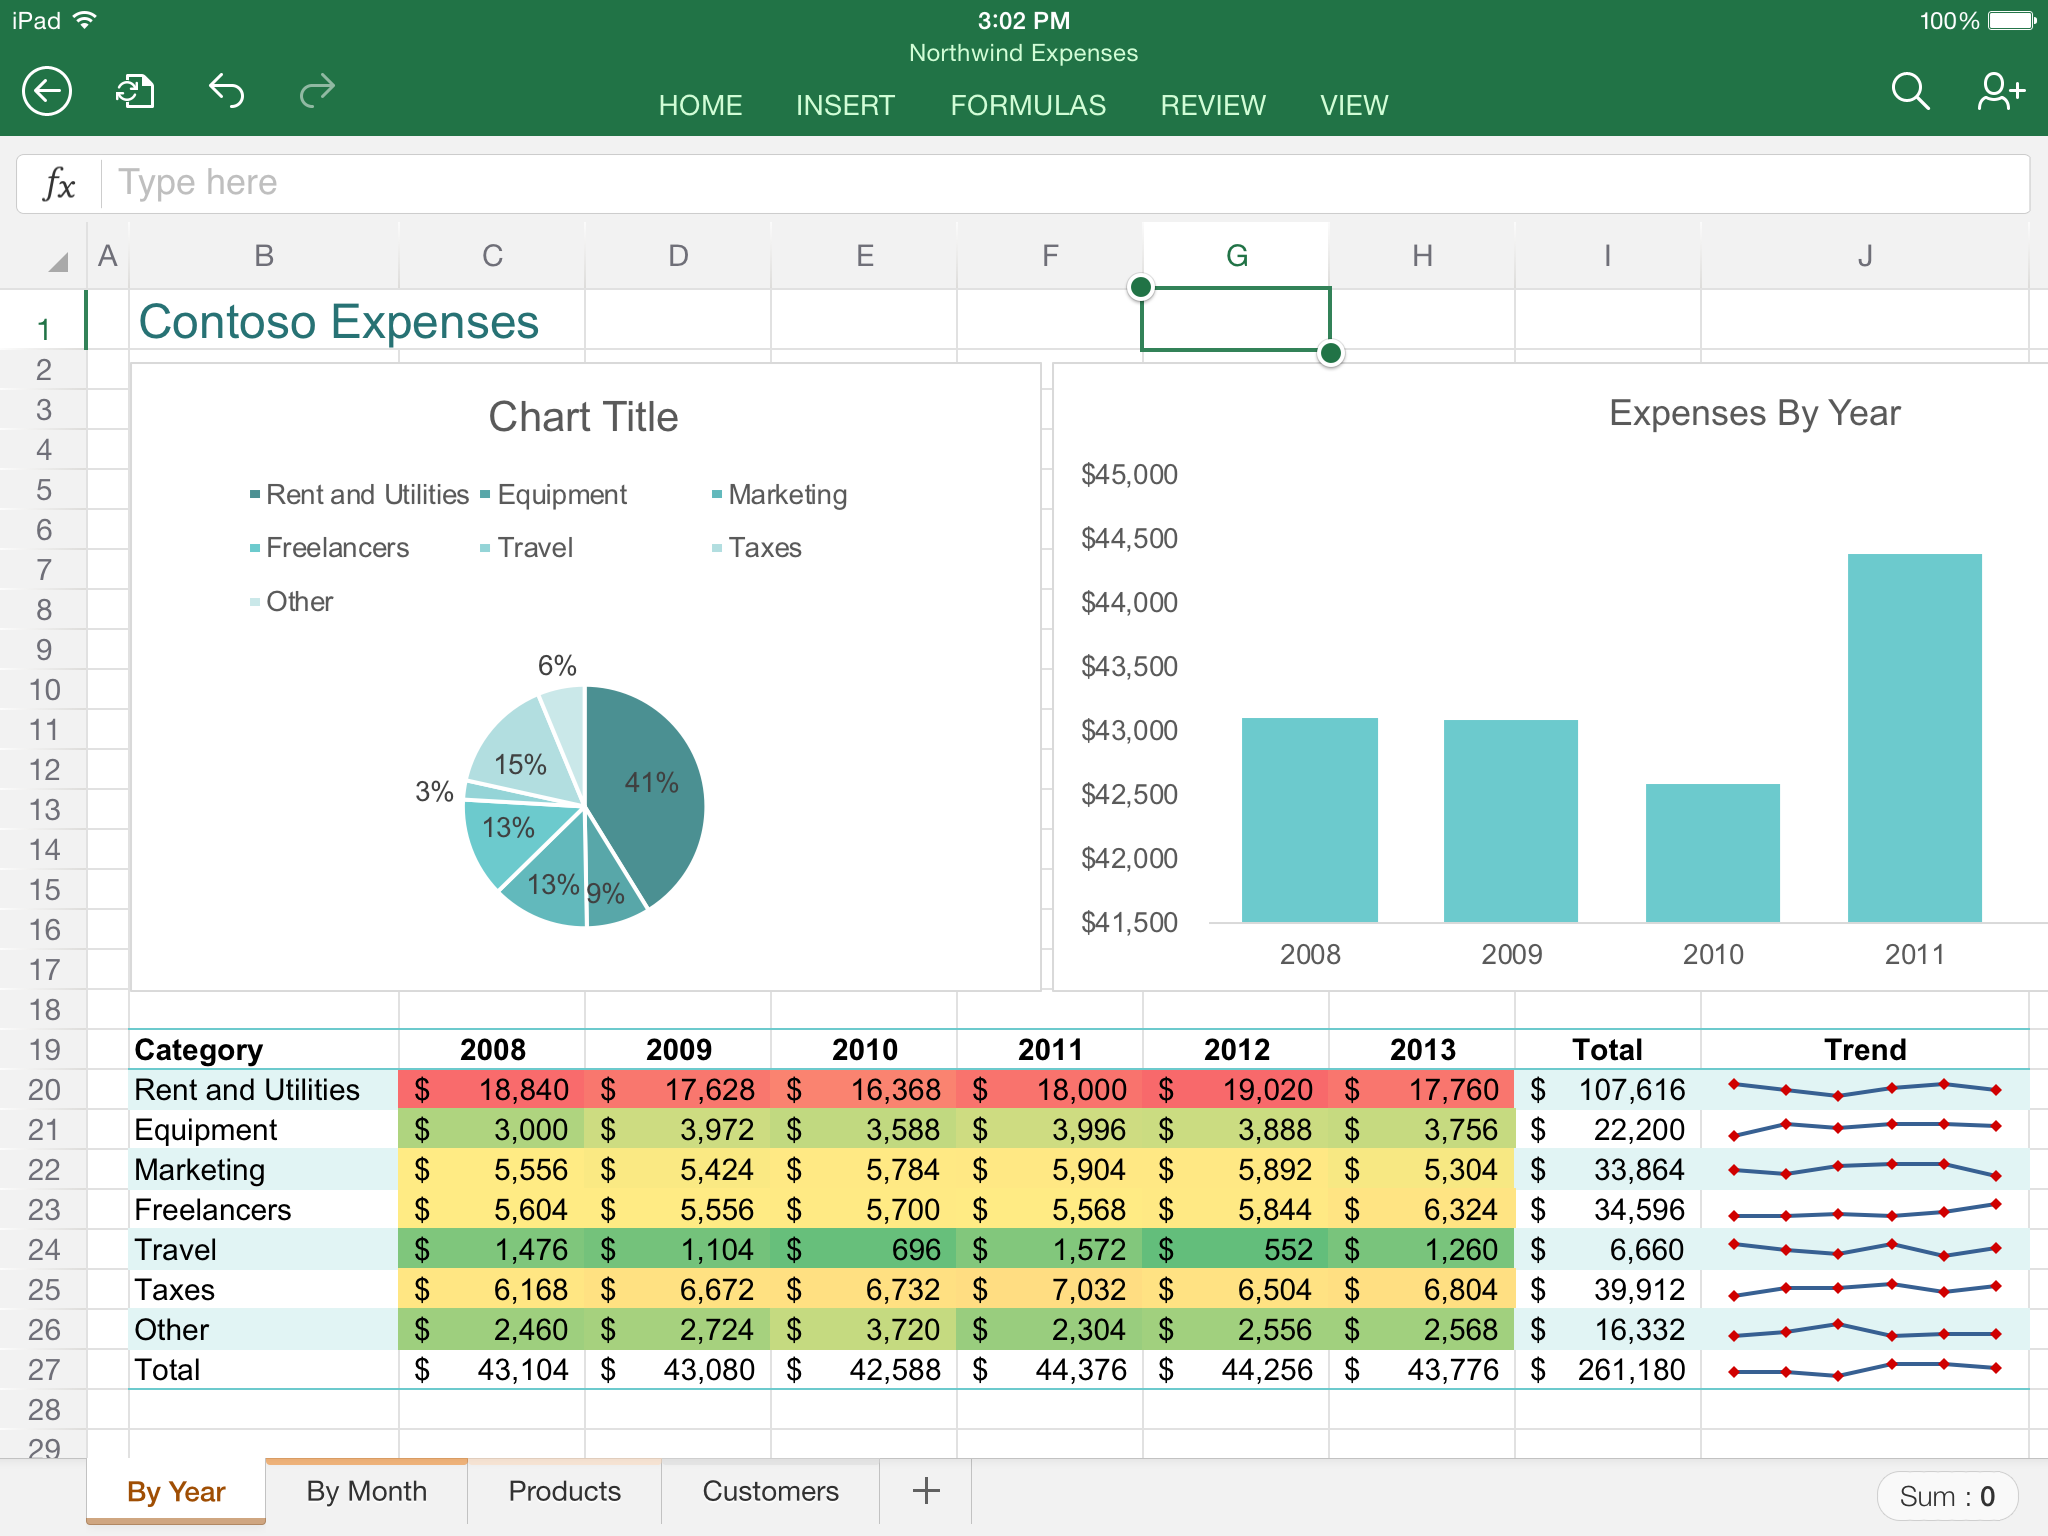 Ediblewildsus  Fascinating App Highlight Excel  Mobile Digital Now With Goodlooking Excel In Action With Lovely Ms Excel Tutorial  Also Excel Second Axis In Addition Microsoft Excel For Download And Today Date In Excel As Well As Mikroskop Excel Additionally Excel  Analysis Toolpak From Youstonybrookedu With Ediblewildsus  Goodlooking App Highlight Excel  Mobile Digital Now With Lovely Excel In Action And Fascinating Ms Excel Tutorial  Also Excel Second Axis In Addition Microsoft Excel For Download From Youstonybrookedu